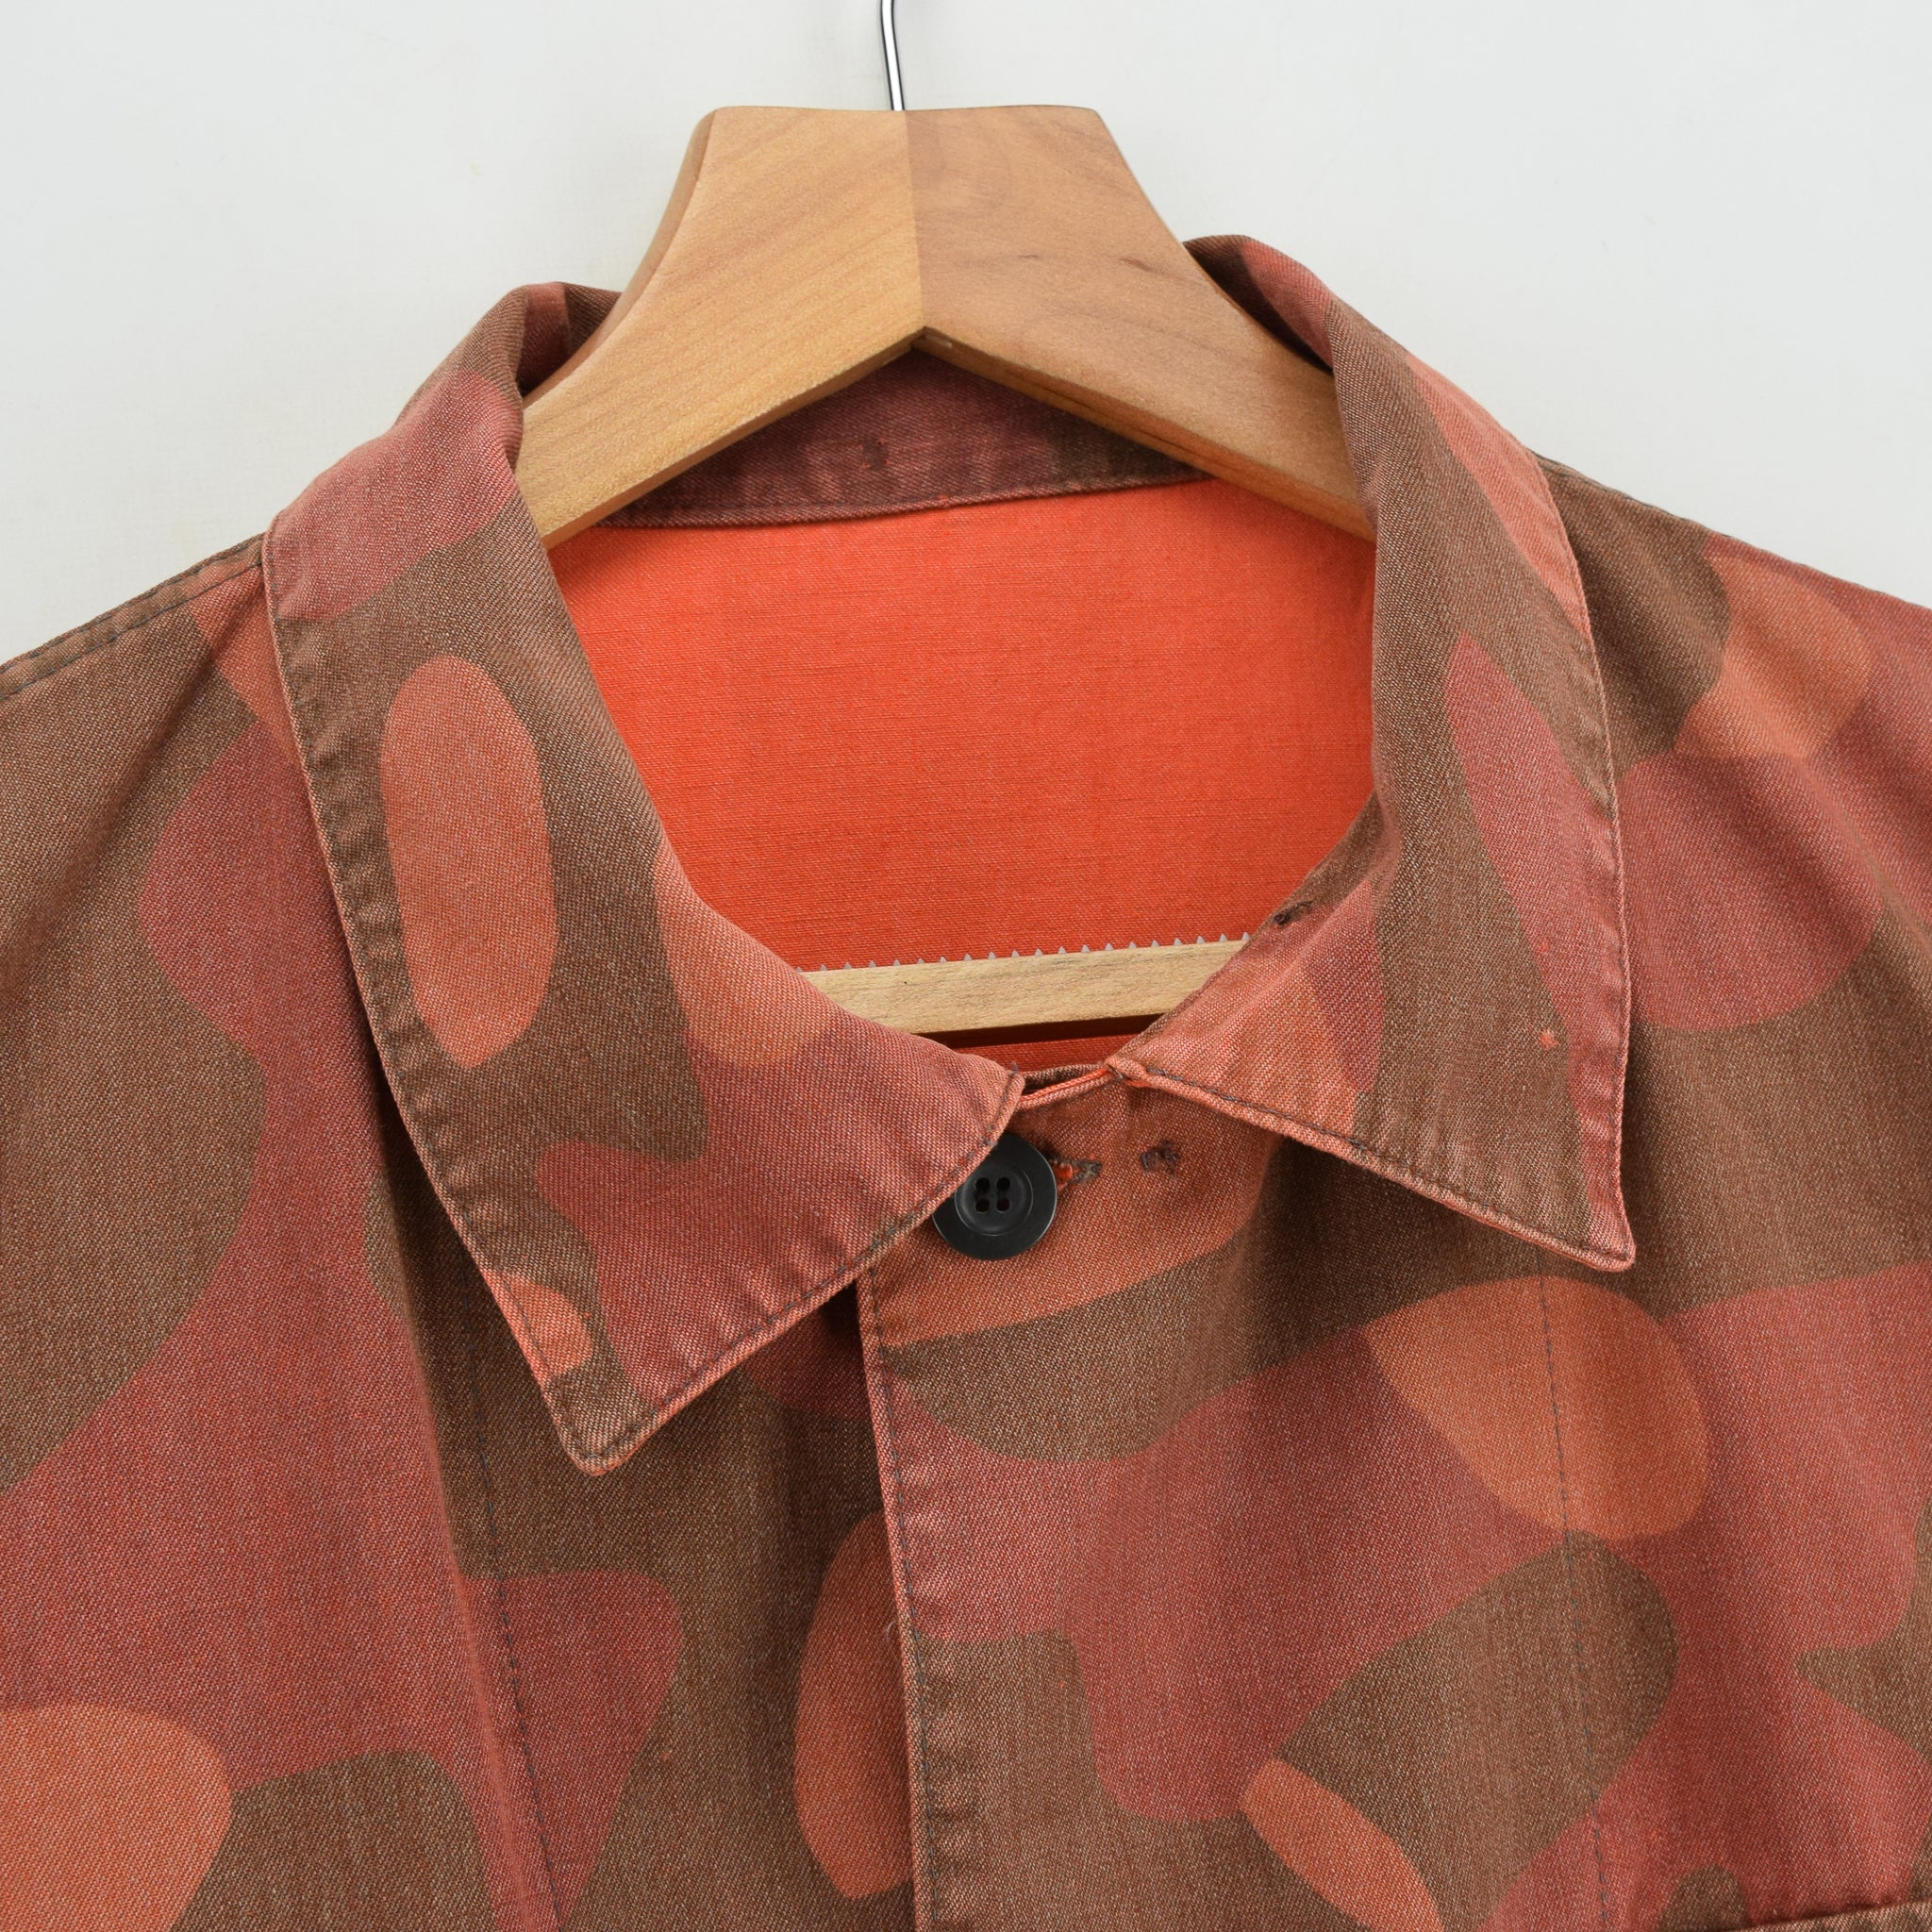 Vintage 80s Military Finnish Army Orange Overdyed Camo Mountain Field Jacket L collar